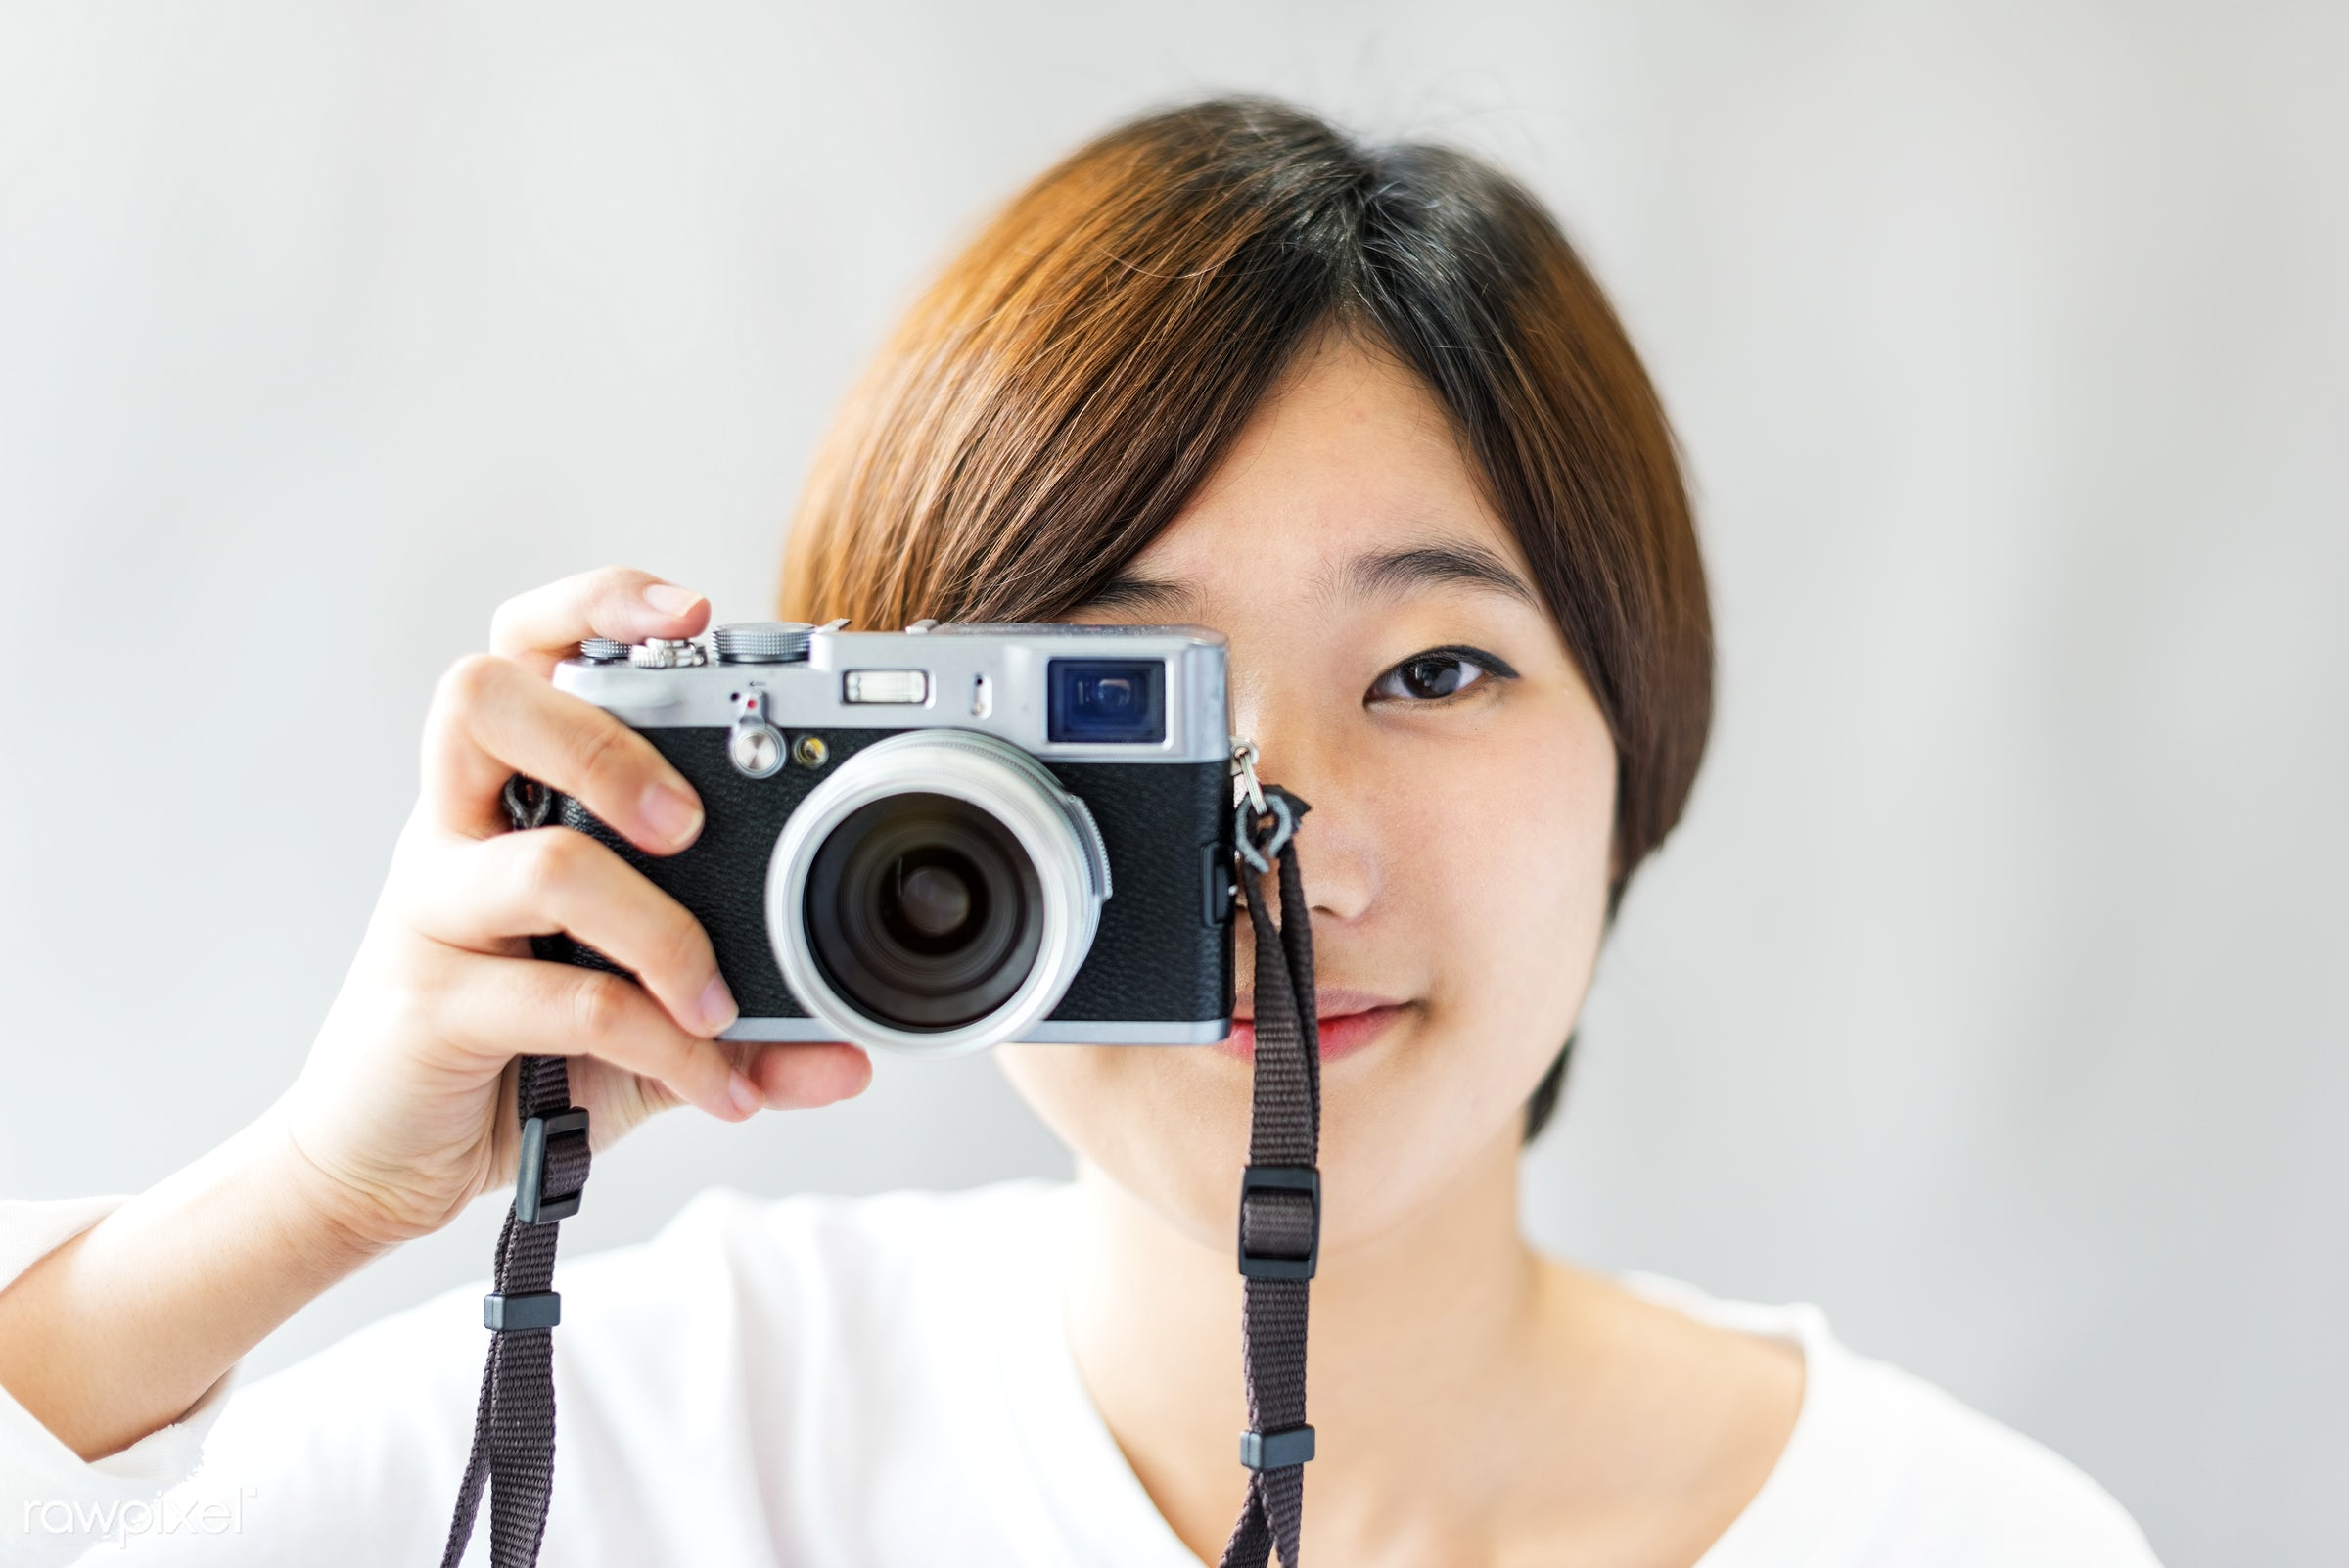 activity, asian ethnicity, attractive, beautiful, camera, casual, cheerful, confidence, female, focus, framing, fun, girl,...